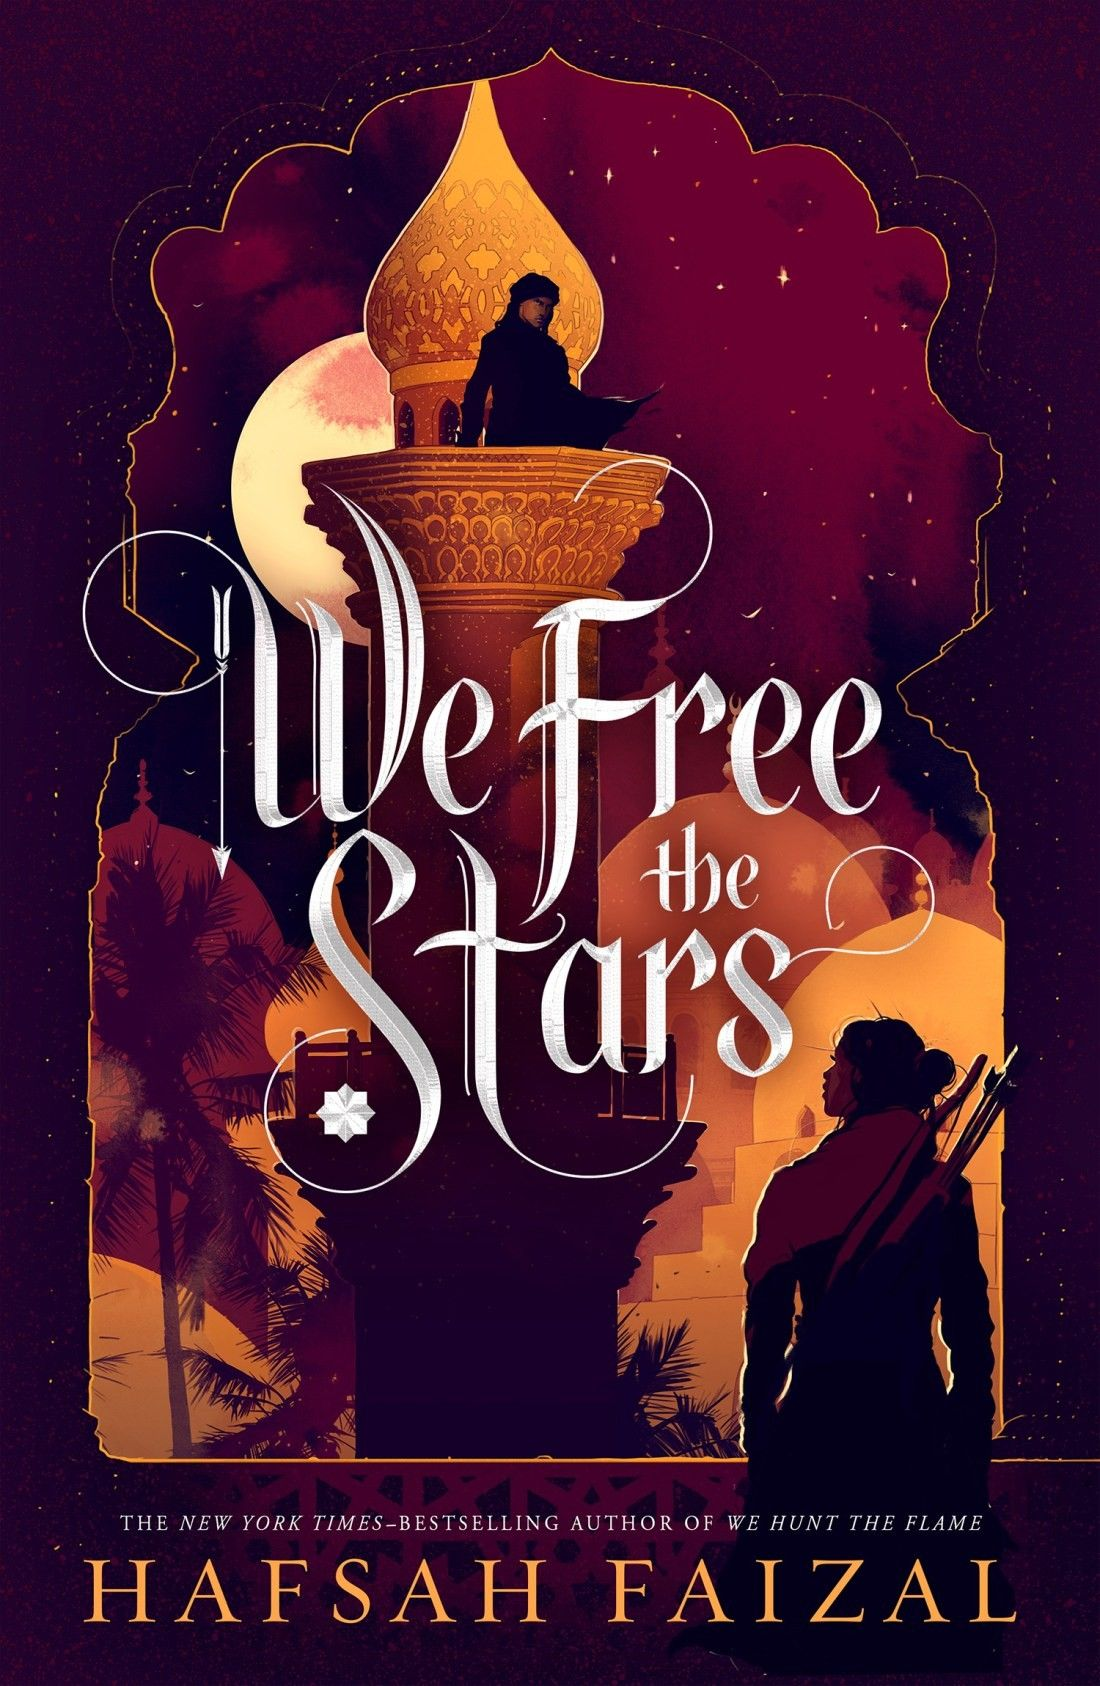 We Free The Stars by Hafsah Faizal, New York Times Bestselling Book, Forbes 30 Under 30